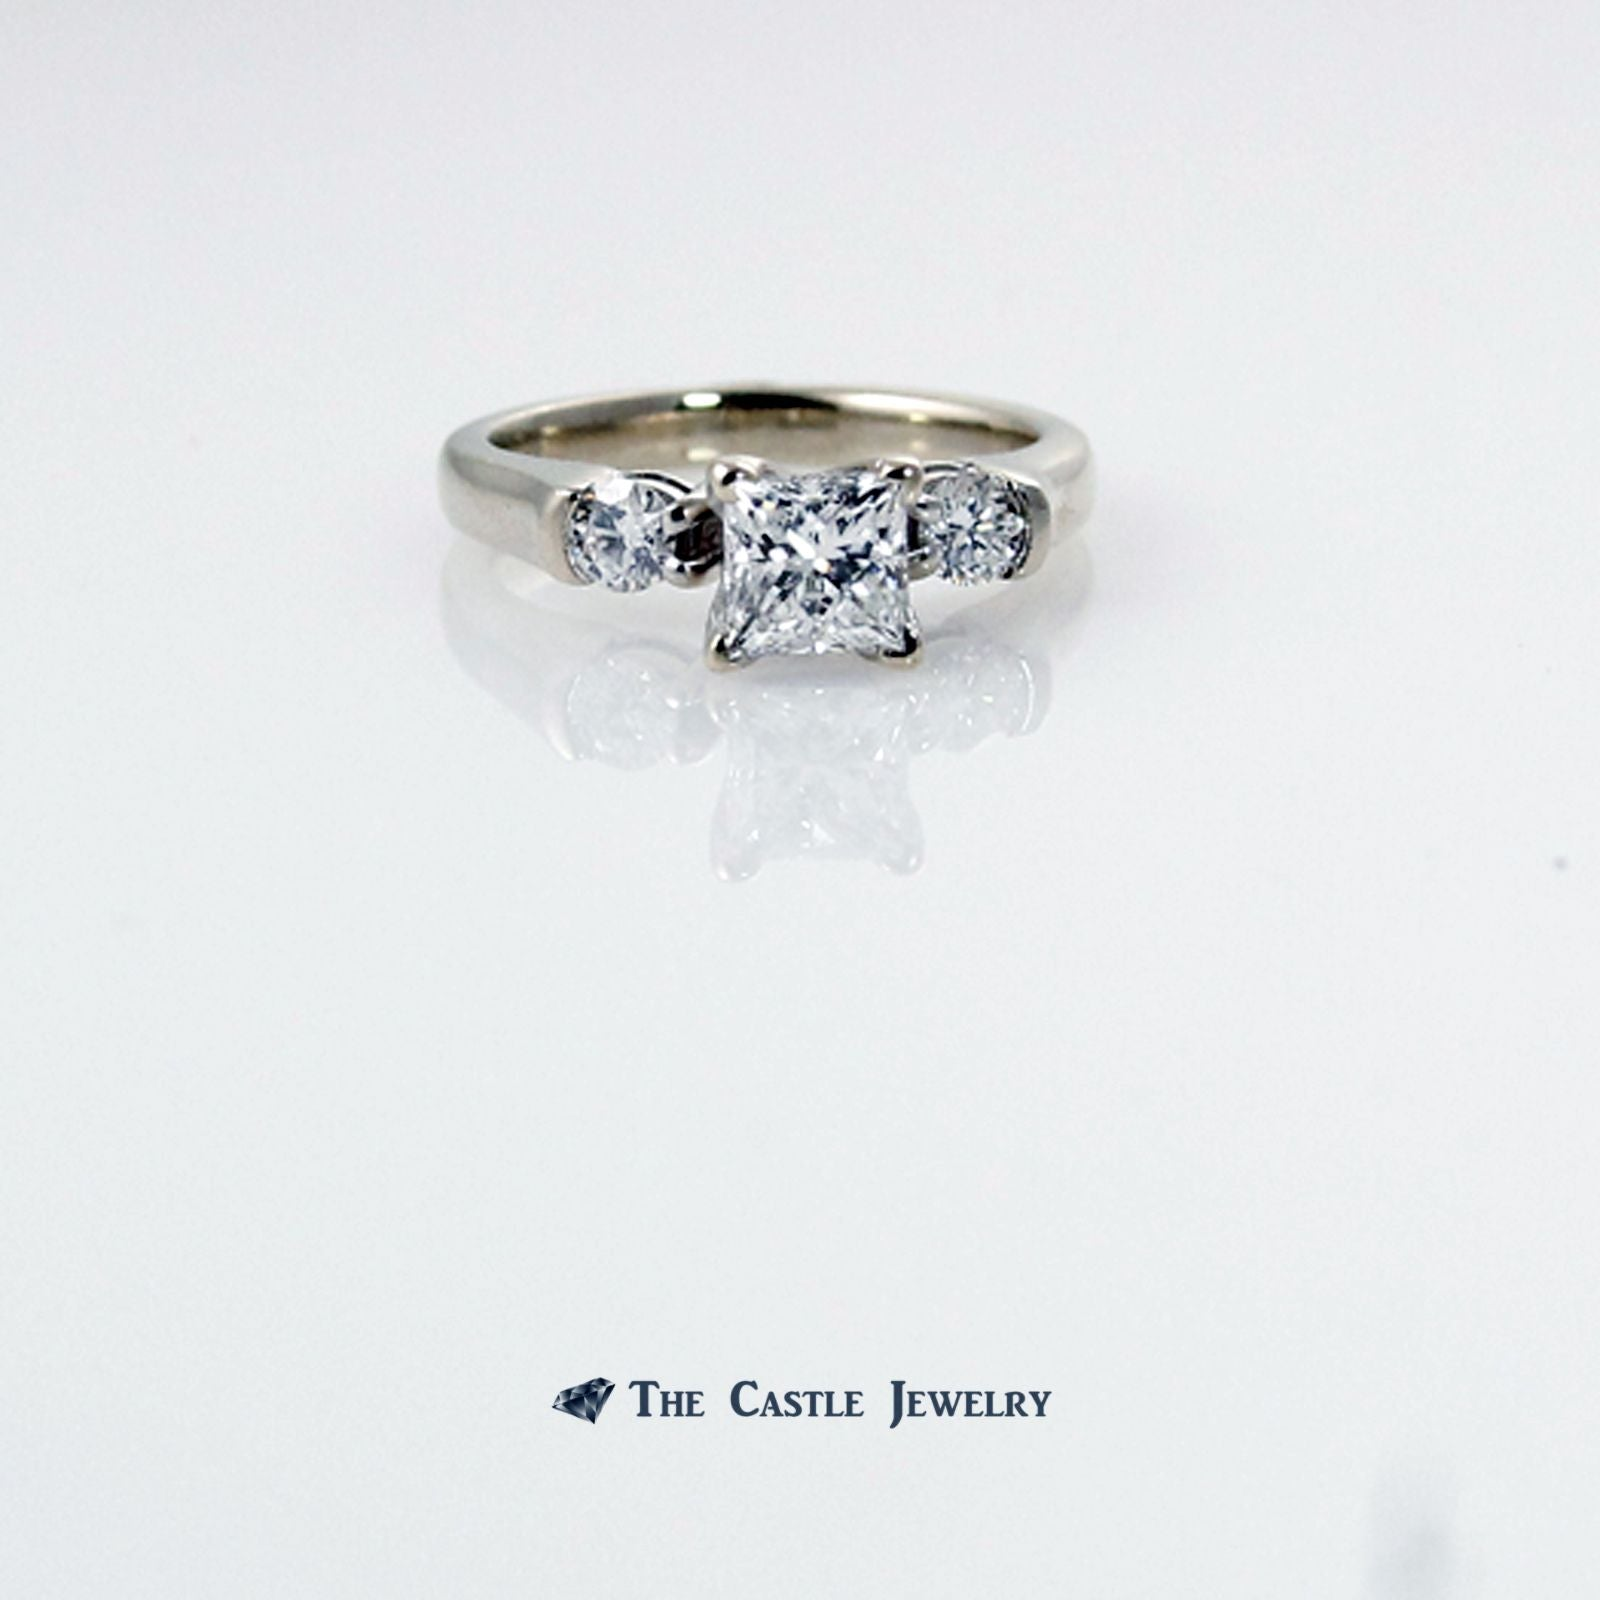 Princess Cut Diamond Engagement Ring with Round Accents in 14K White Gold